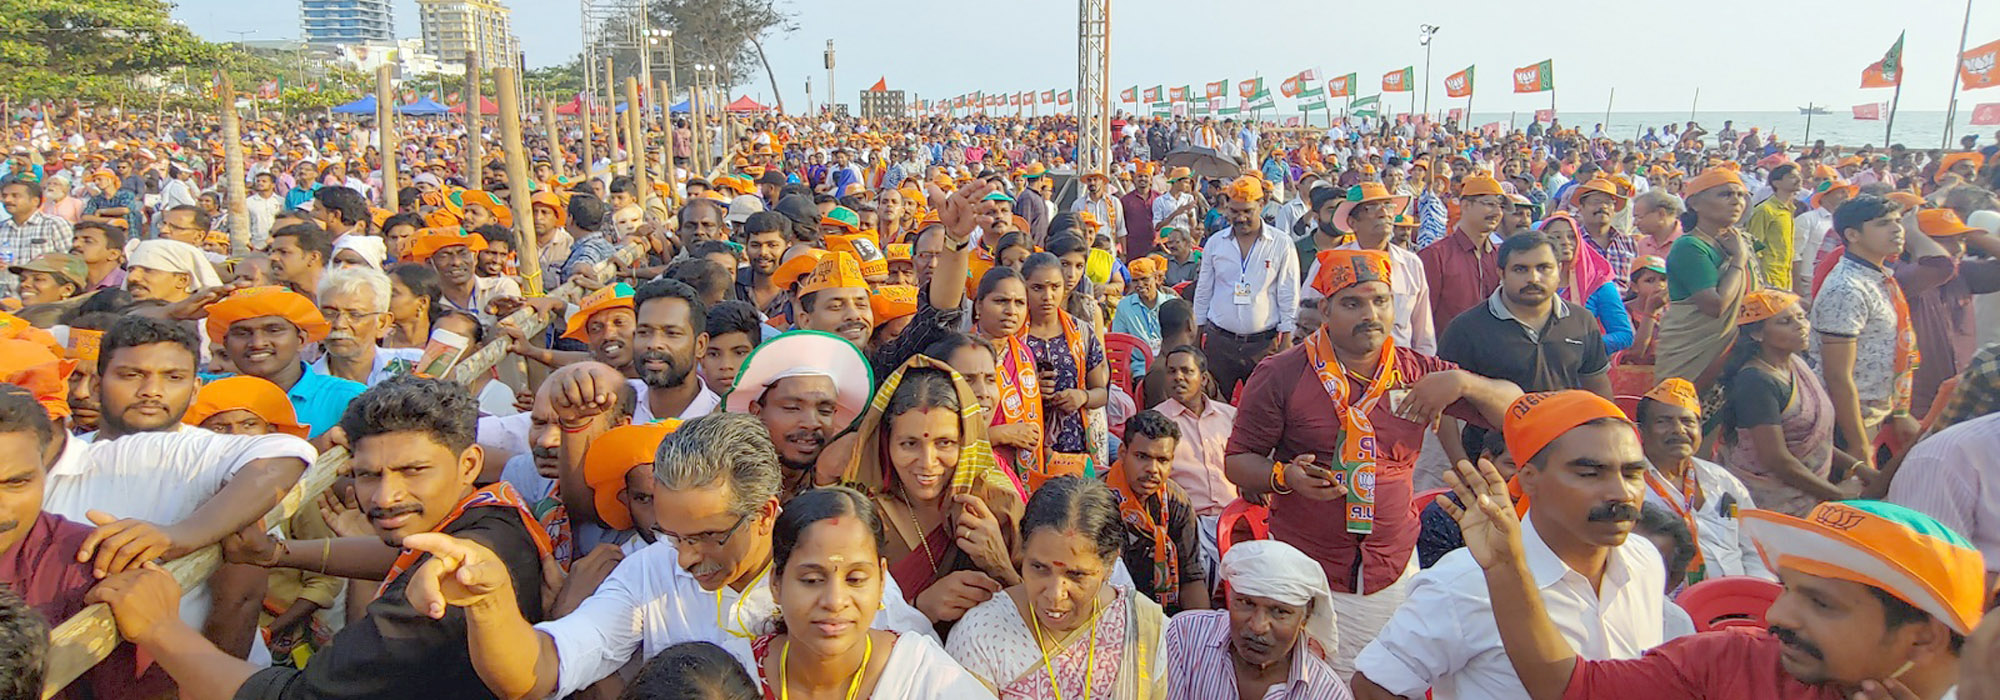 The crowd which attended the election campain  organised by BJP in Kozhikode, Kerala. (Photo by Binesh Kumar/GroundTruth)